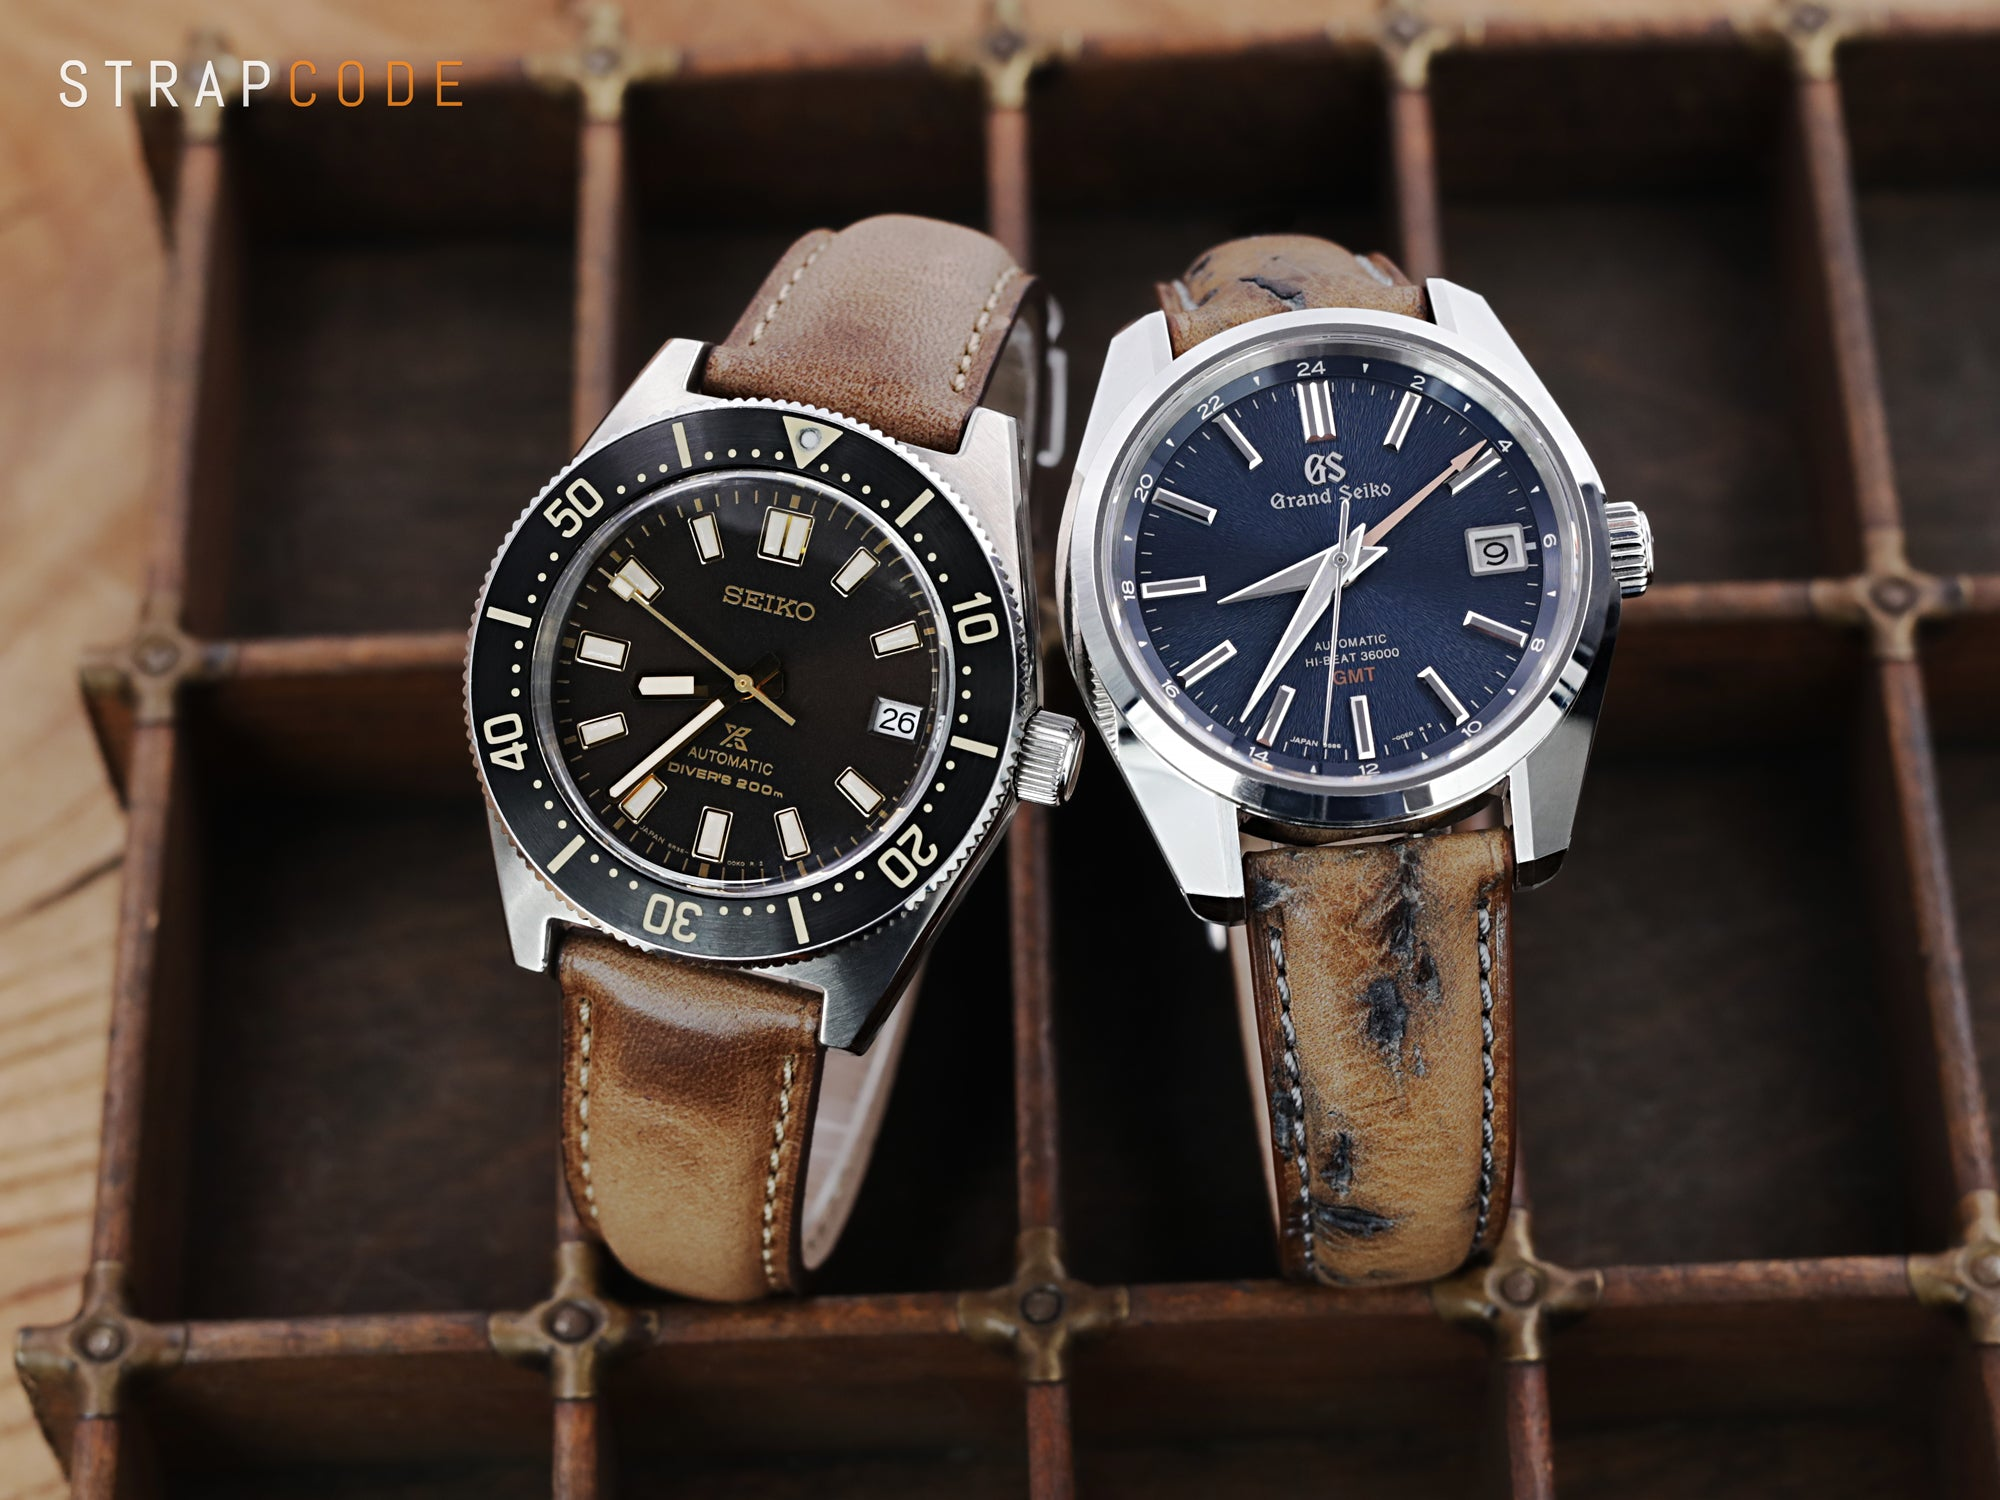 Itaian Leather watch straps by strapcode